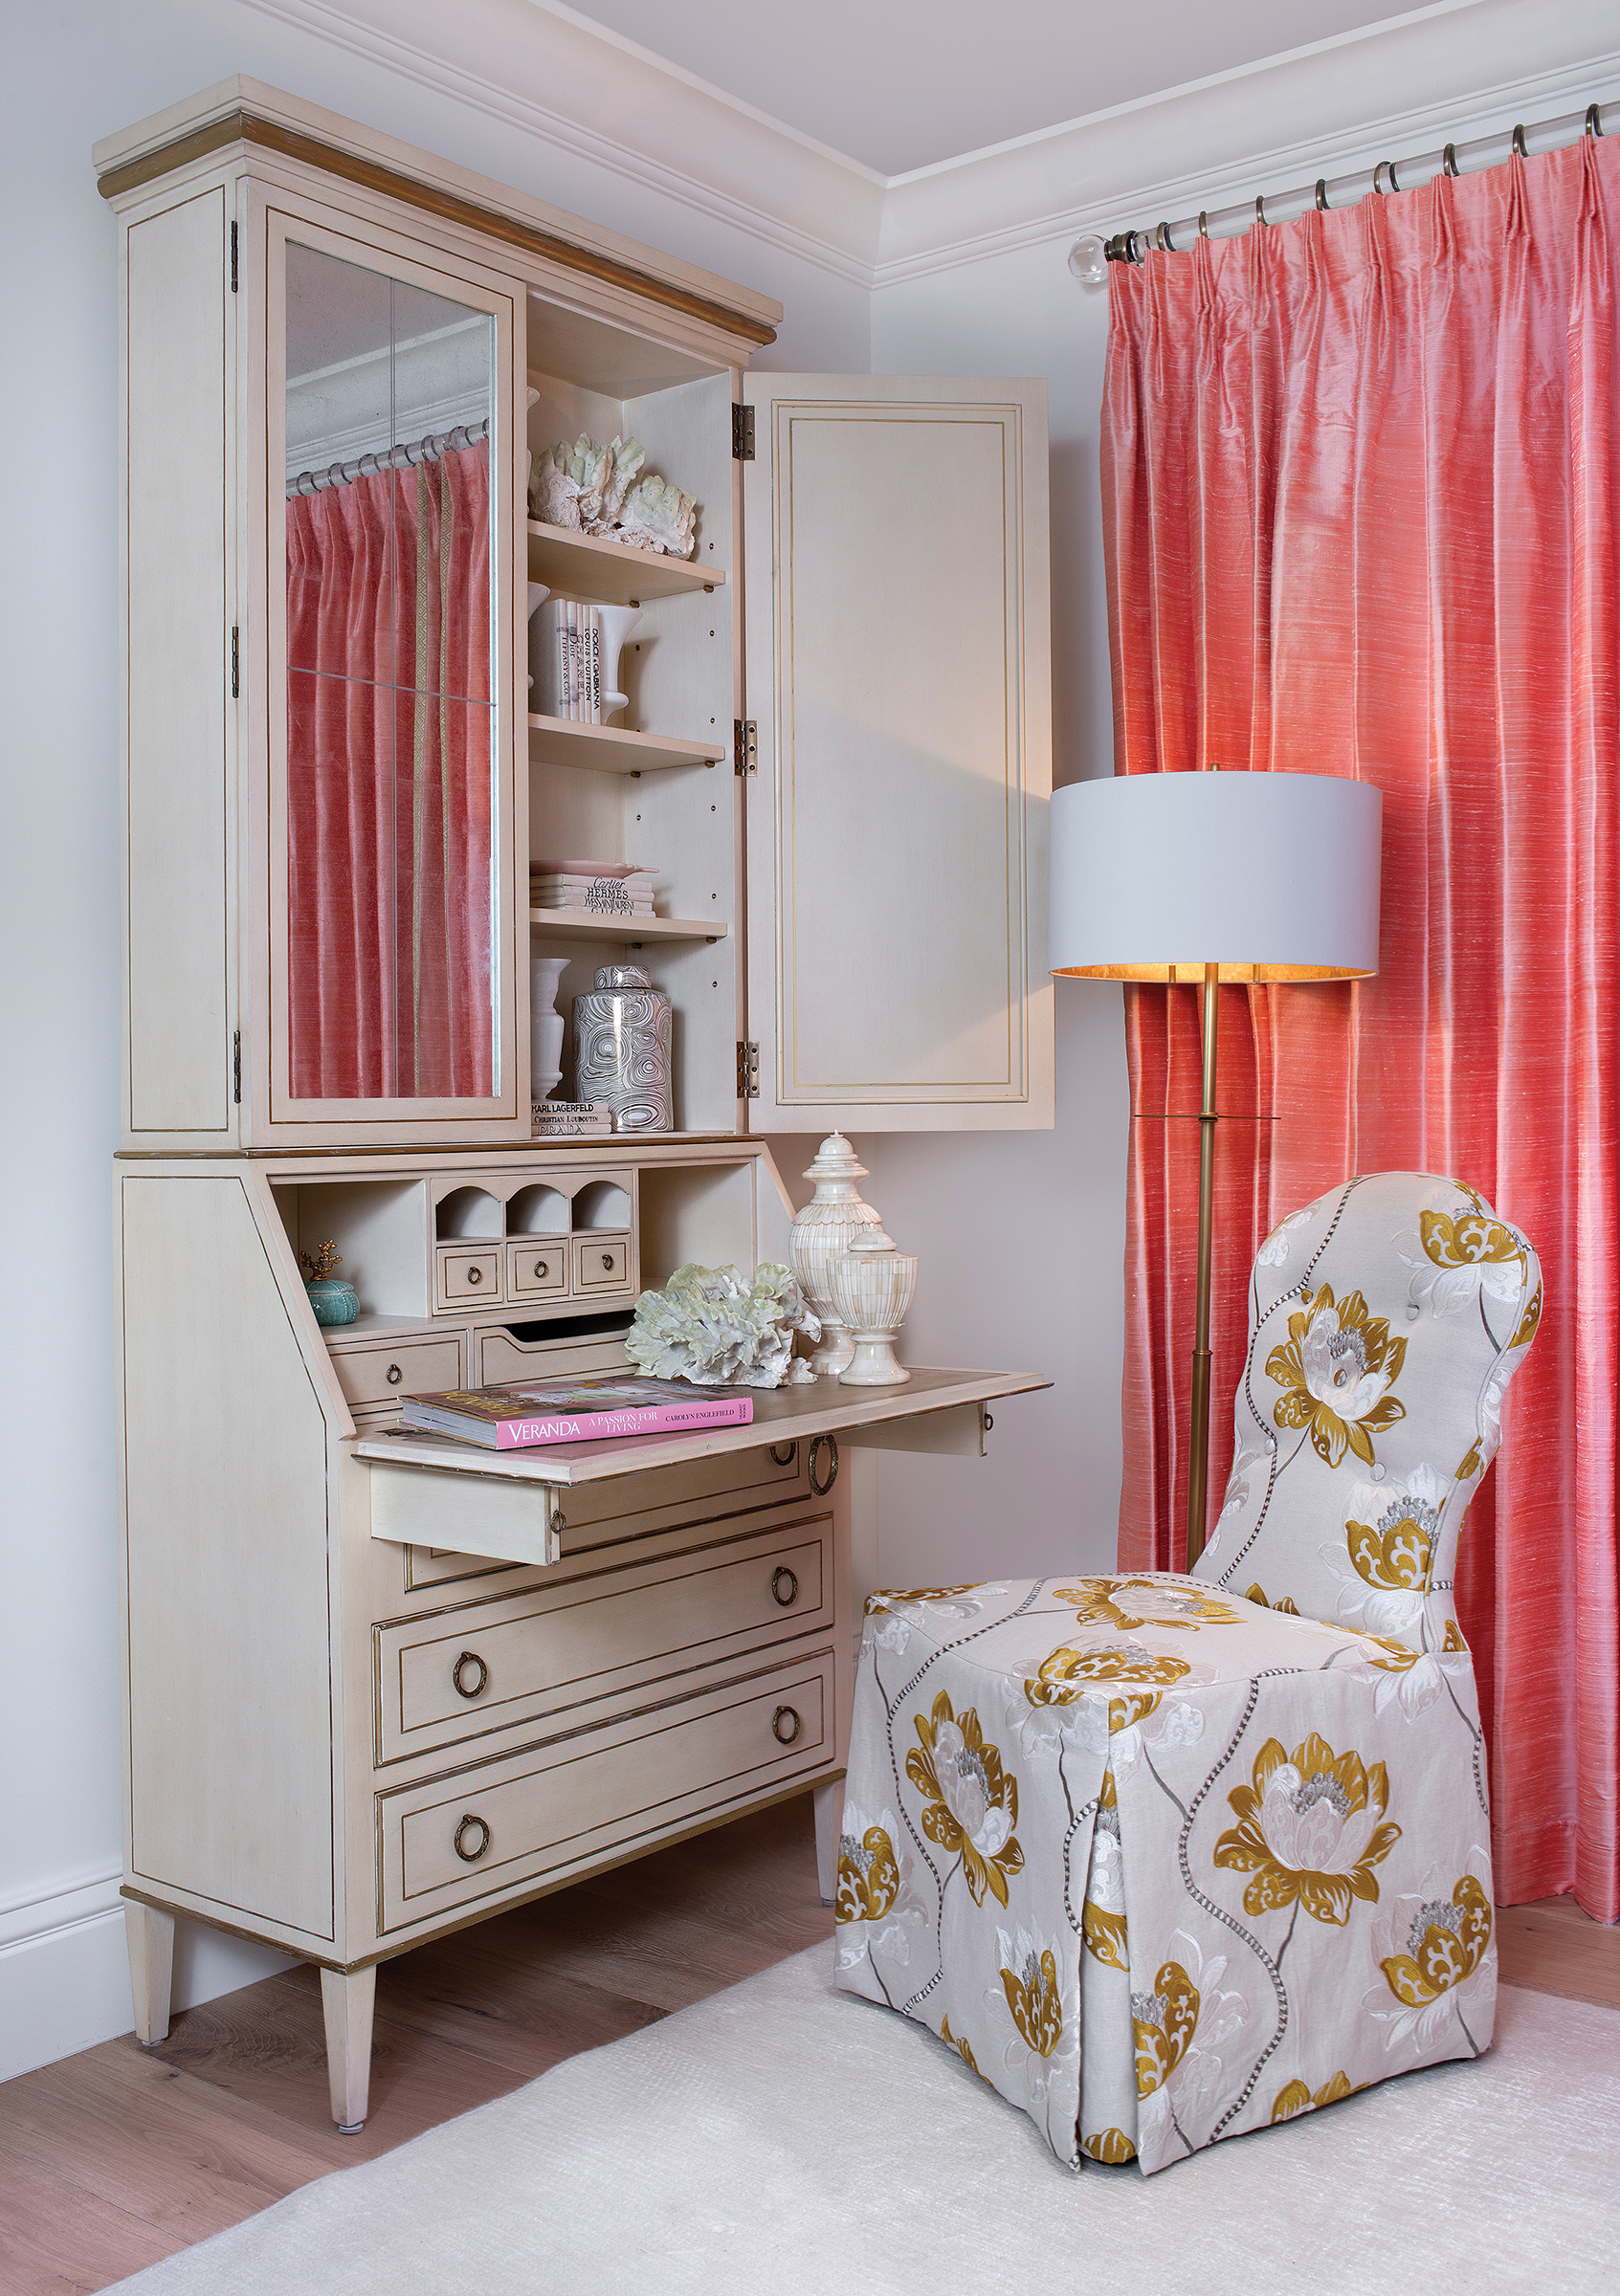 The Leif secretary desk with an Antique Linen finish is a staple of August's line. An Arden Court chair with imported fabric completes this cozy workspace. French doors dressed in coral draperies fabricated by Statewide Window Treatments open onto the travertine pool deck. Flowers shown are courtesy of the Naples Garden Club.